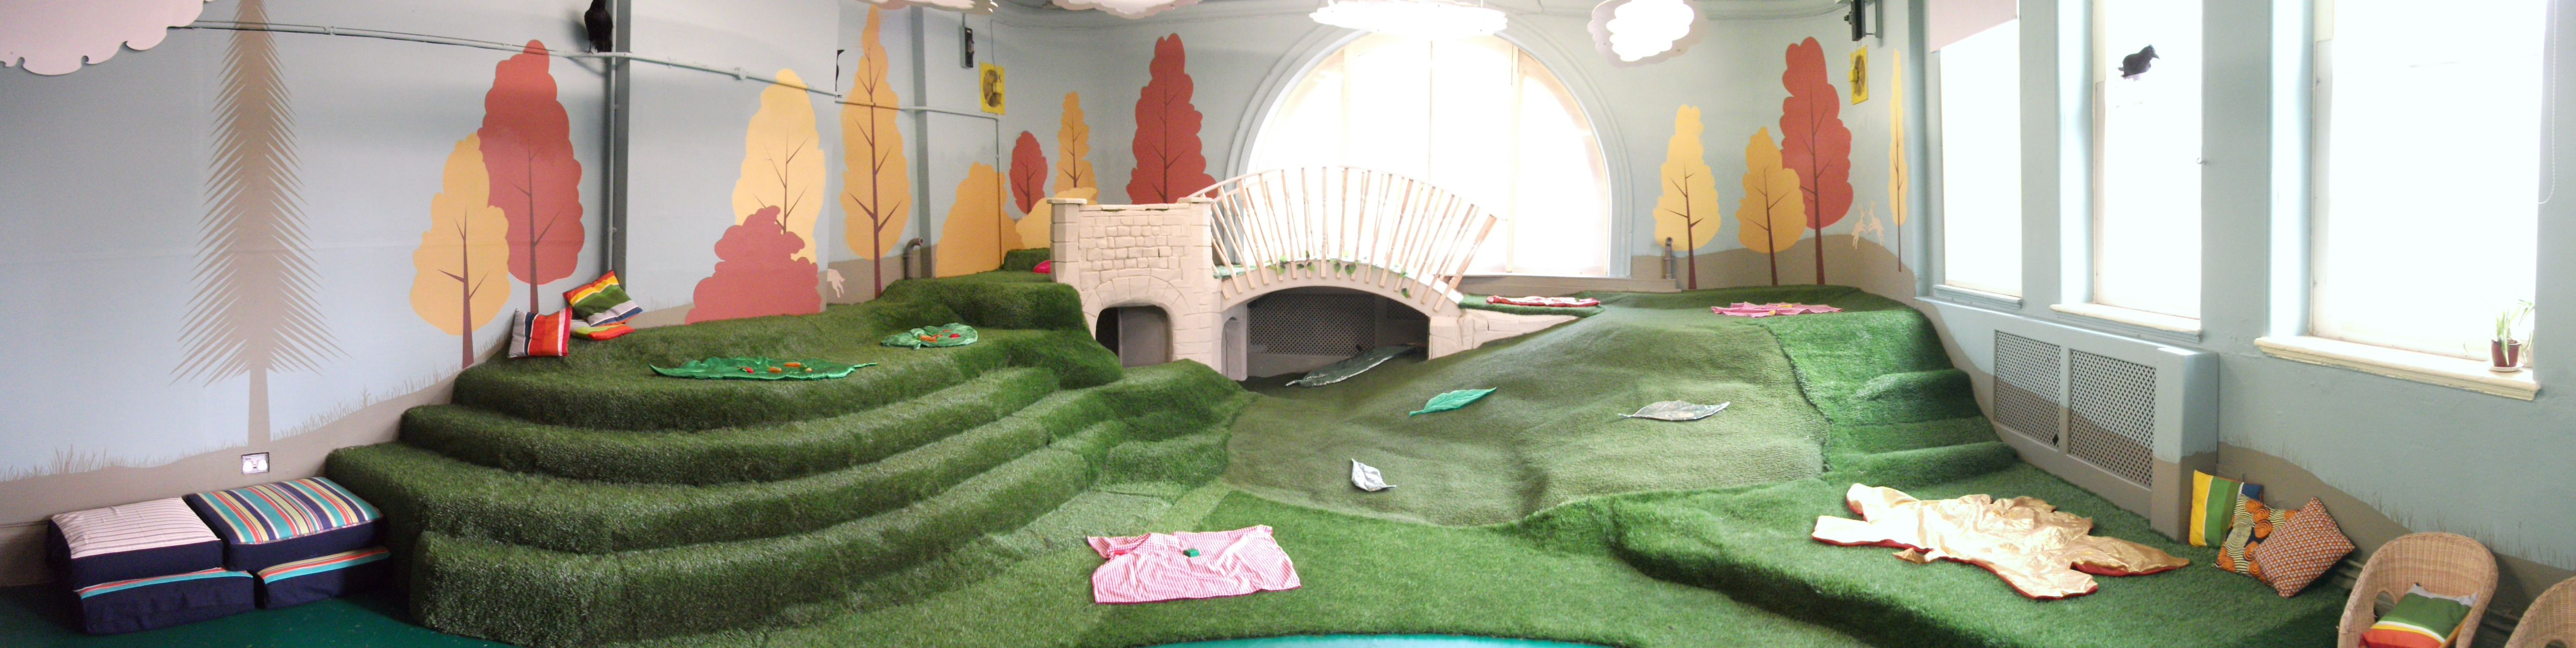 Our play and birthday party area for children.